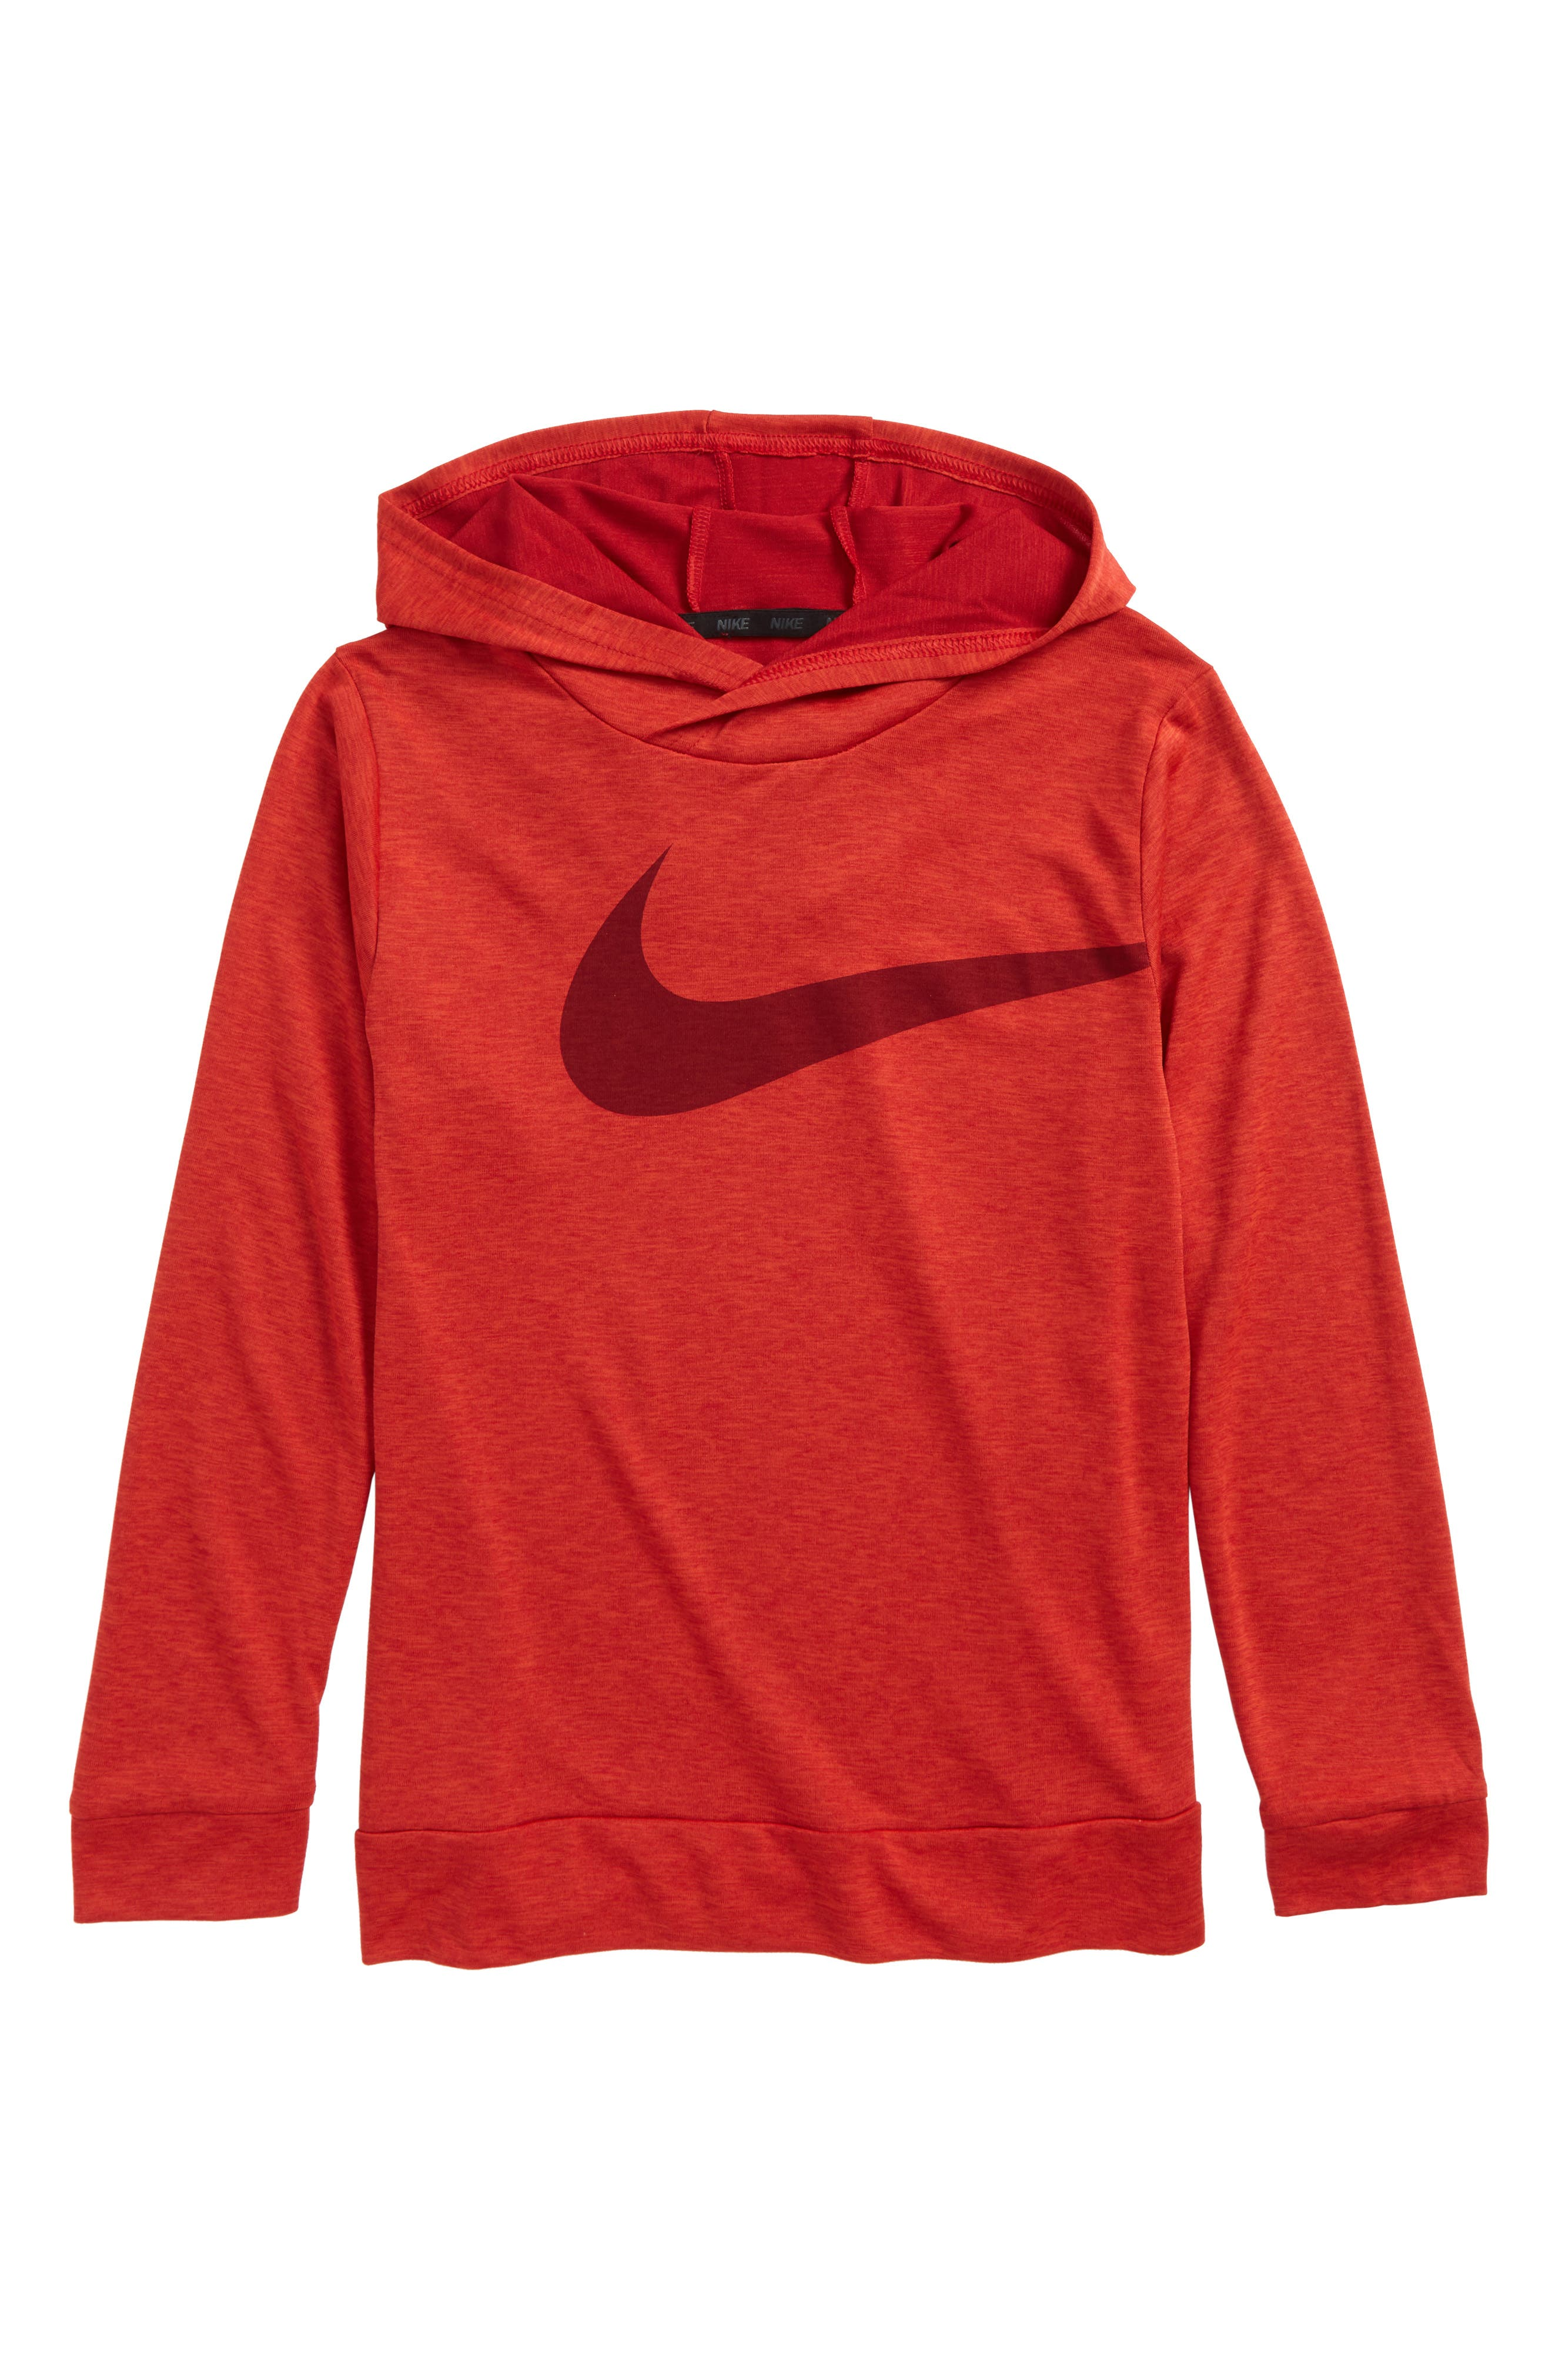 Breathe Training Hoodie,                         Main,                         color, Gym Red/ Habanero Red